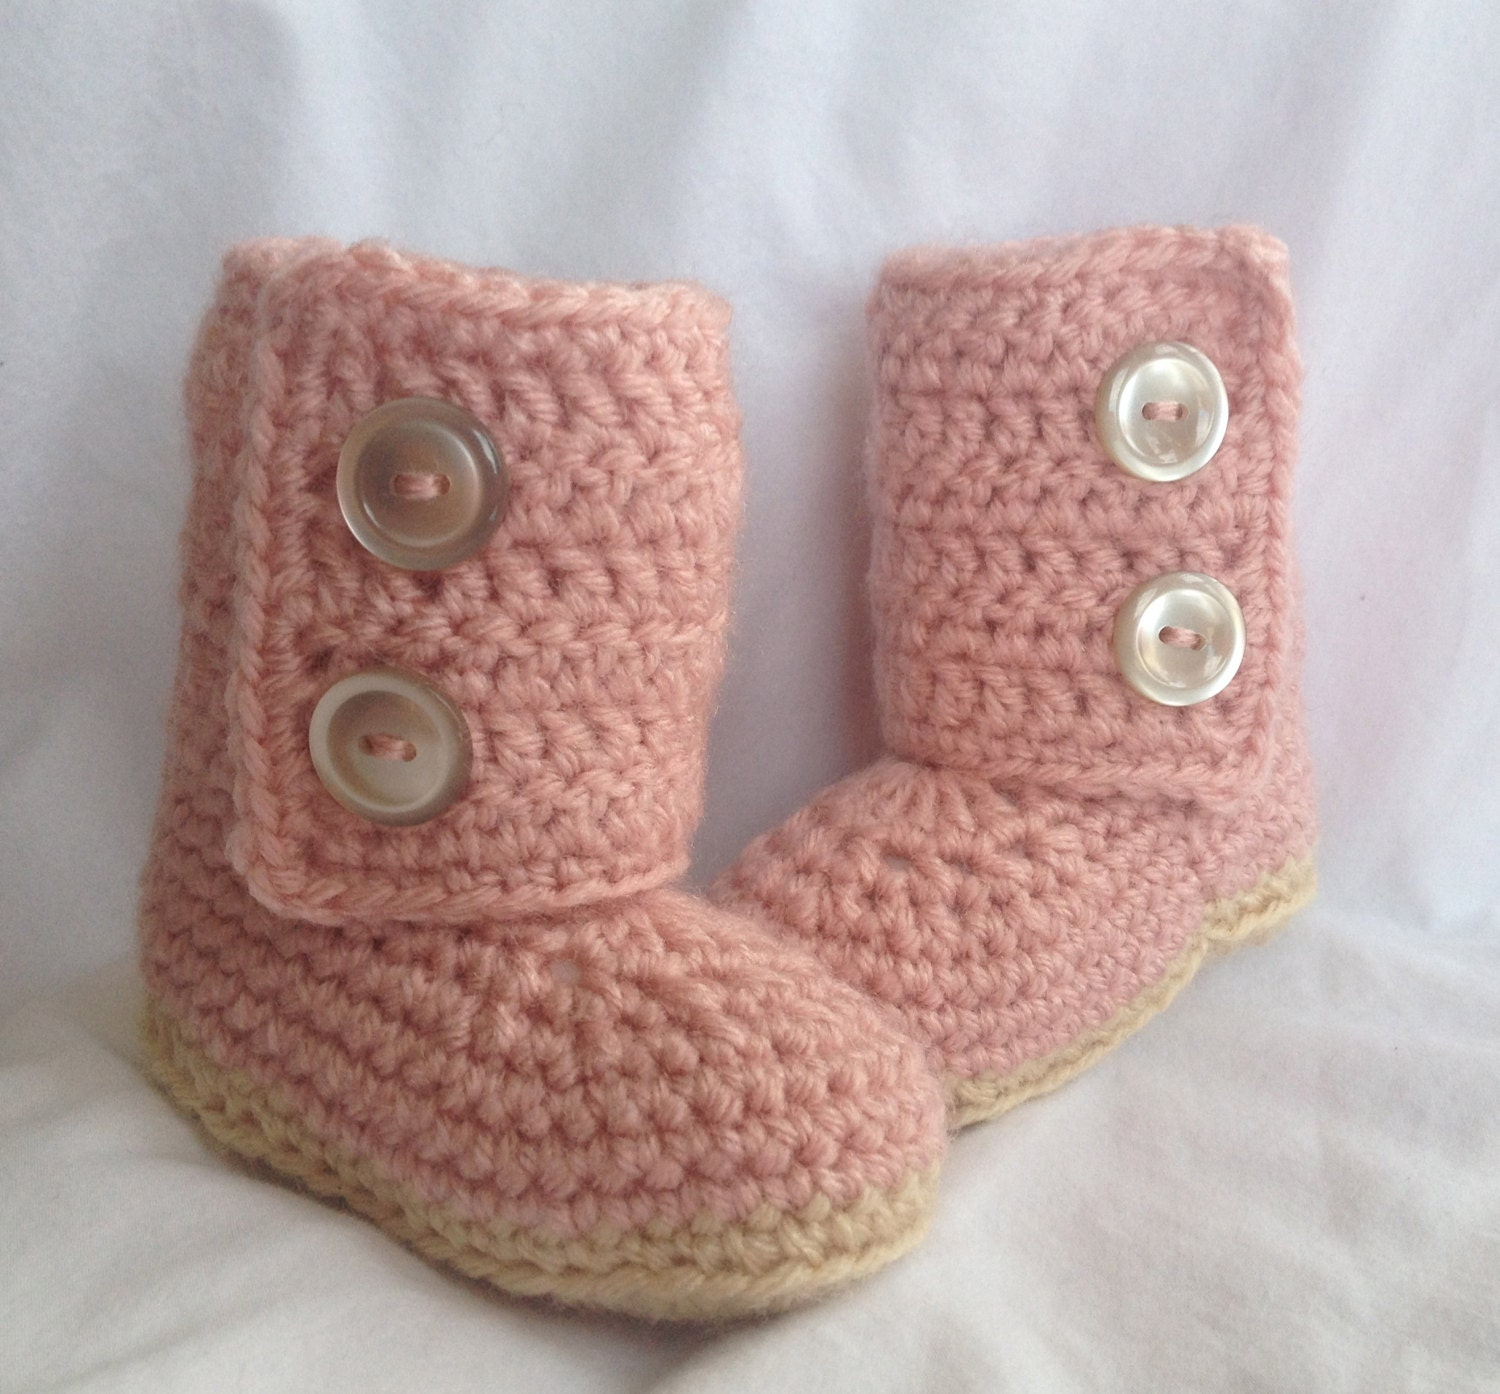 Crochet Baby Booties Pink Boots by cmiron on Etsy